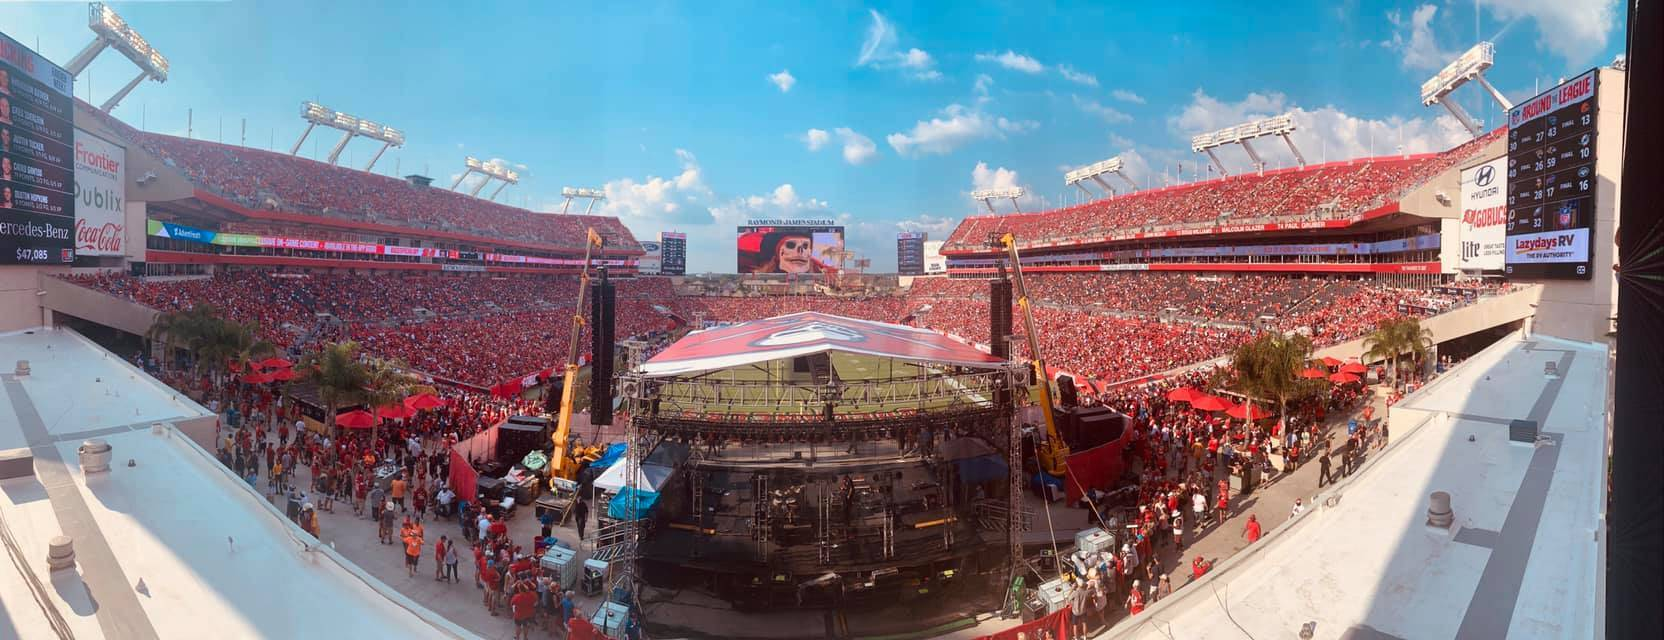 PRT Sunshade covers Buccaneers' opening game